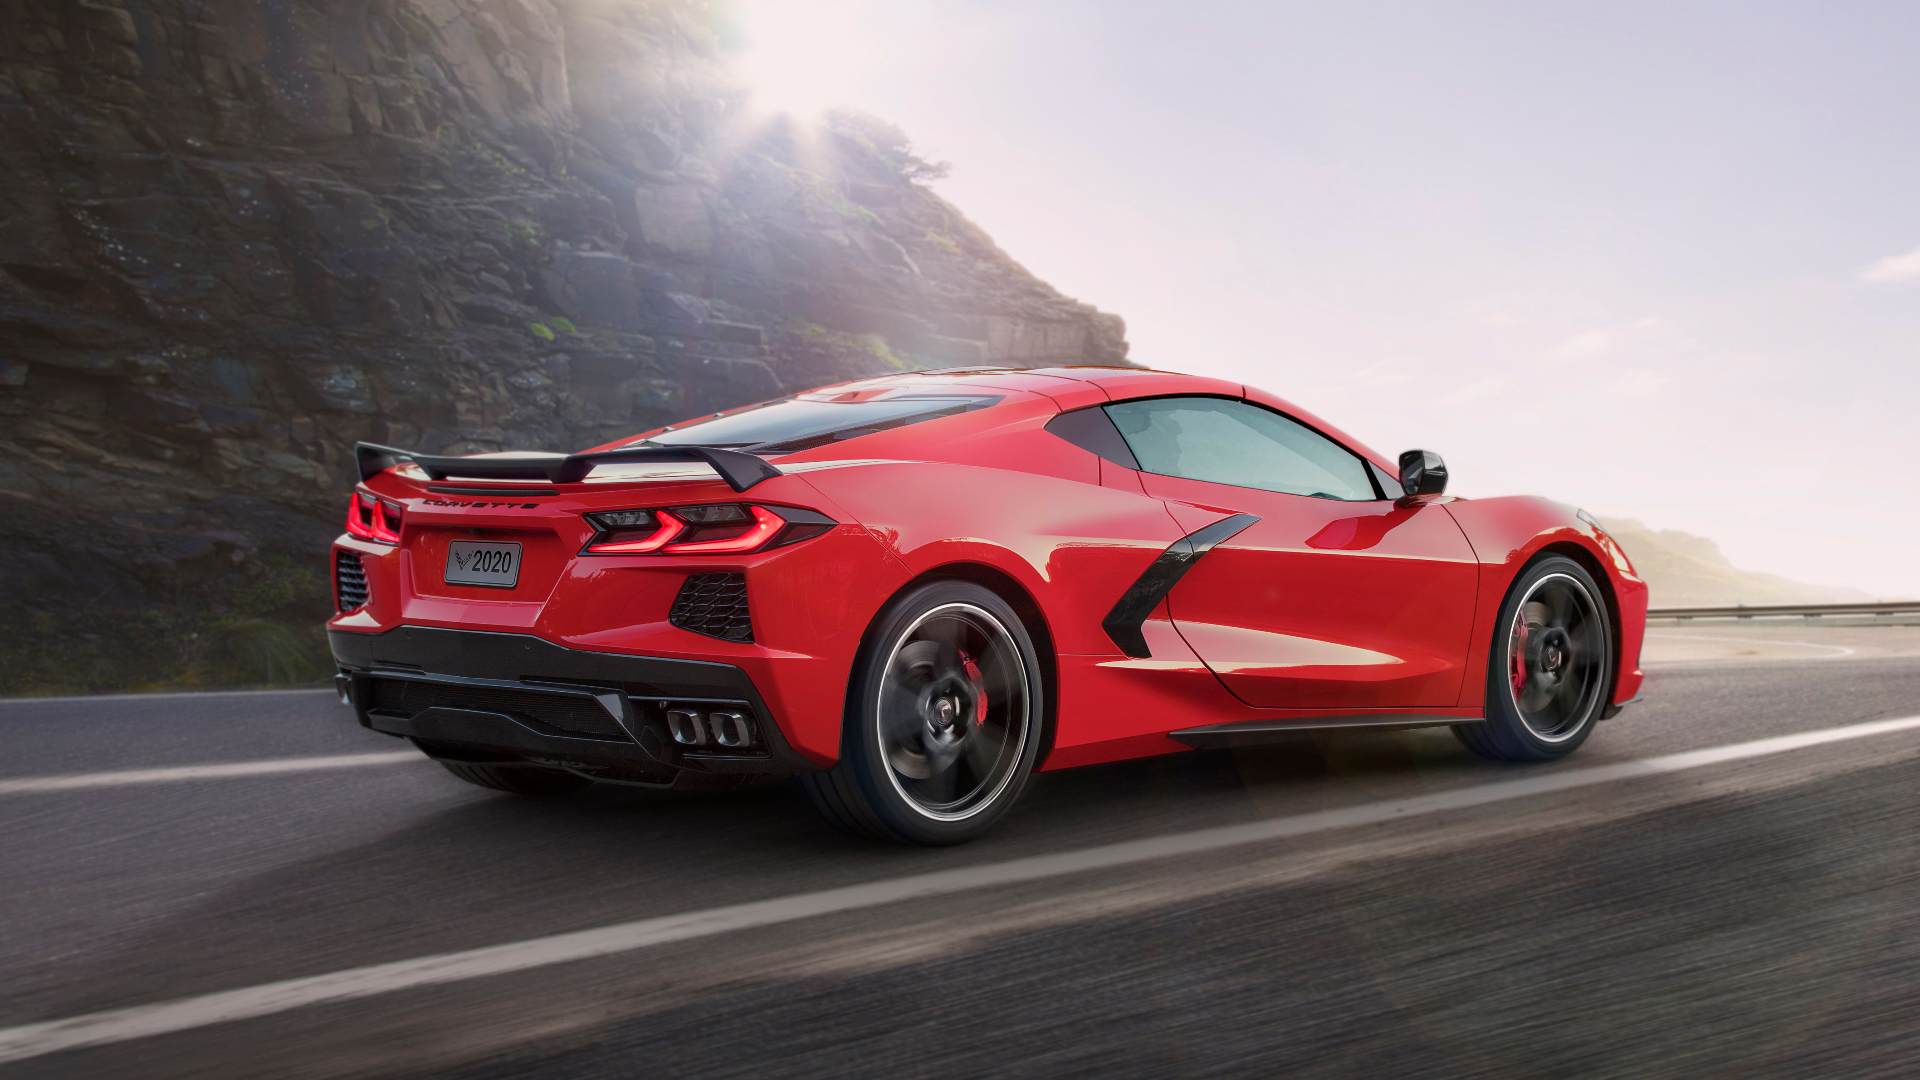 Red Corvette Wallpapers